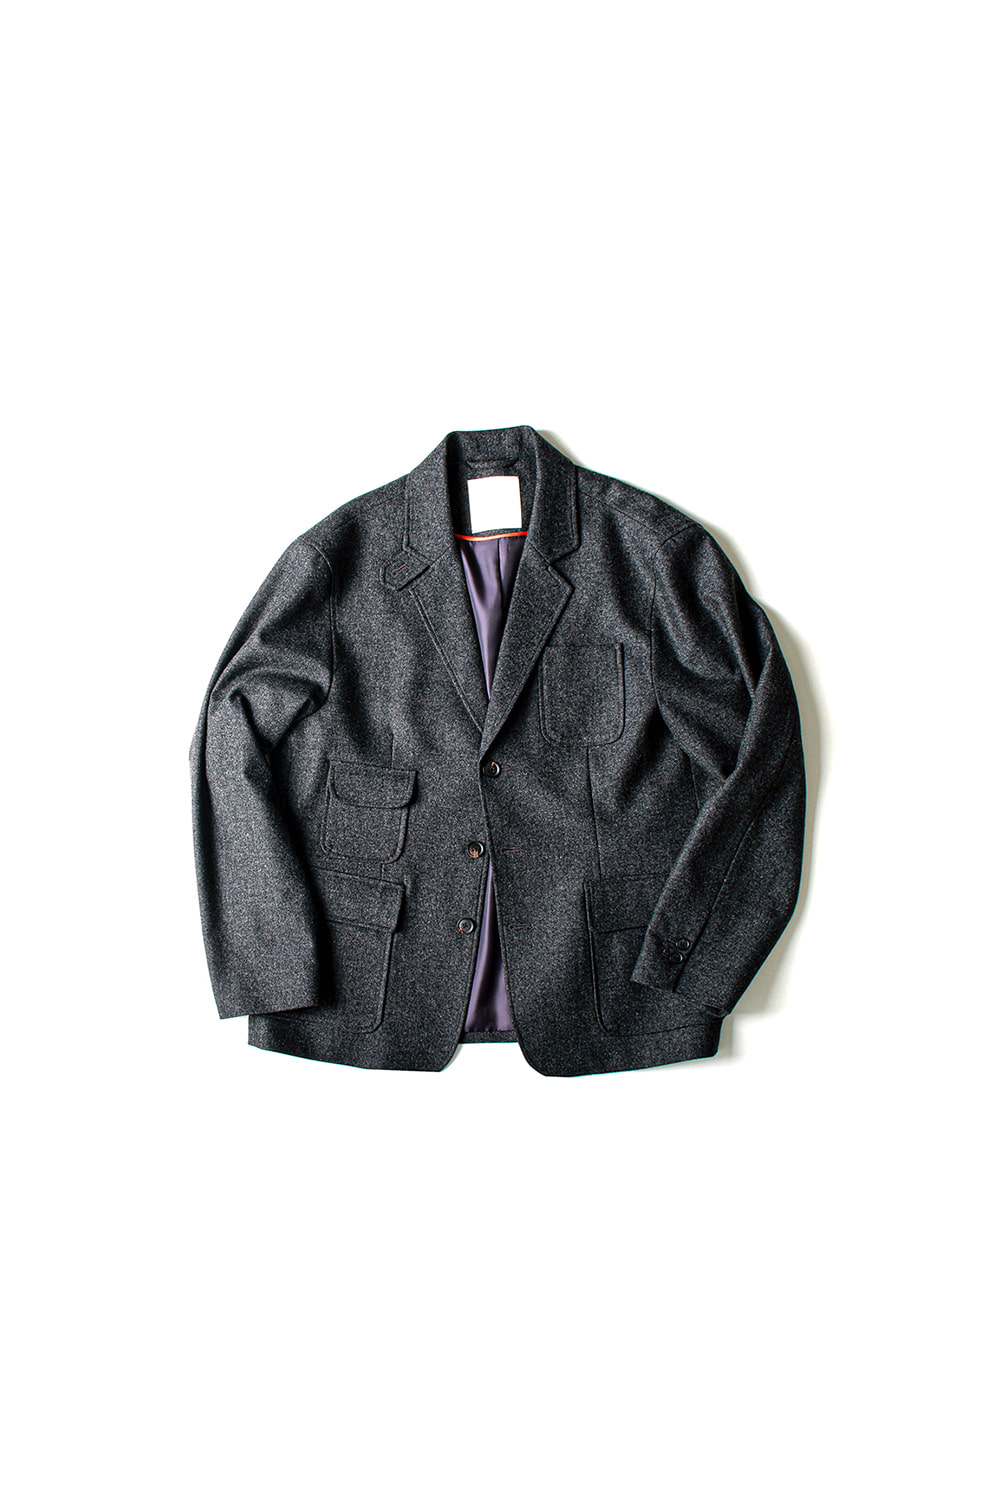 [Ourselves] FINE WOOL SLUMBER JACKET (CH)